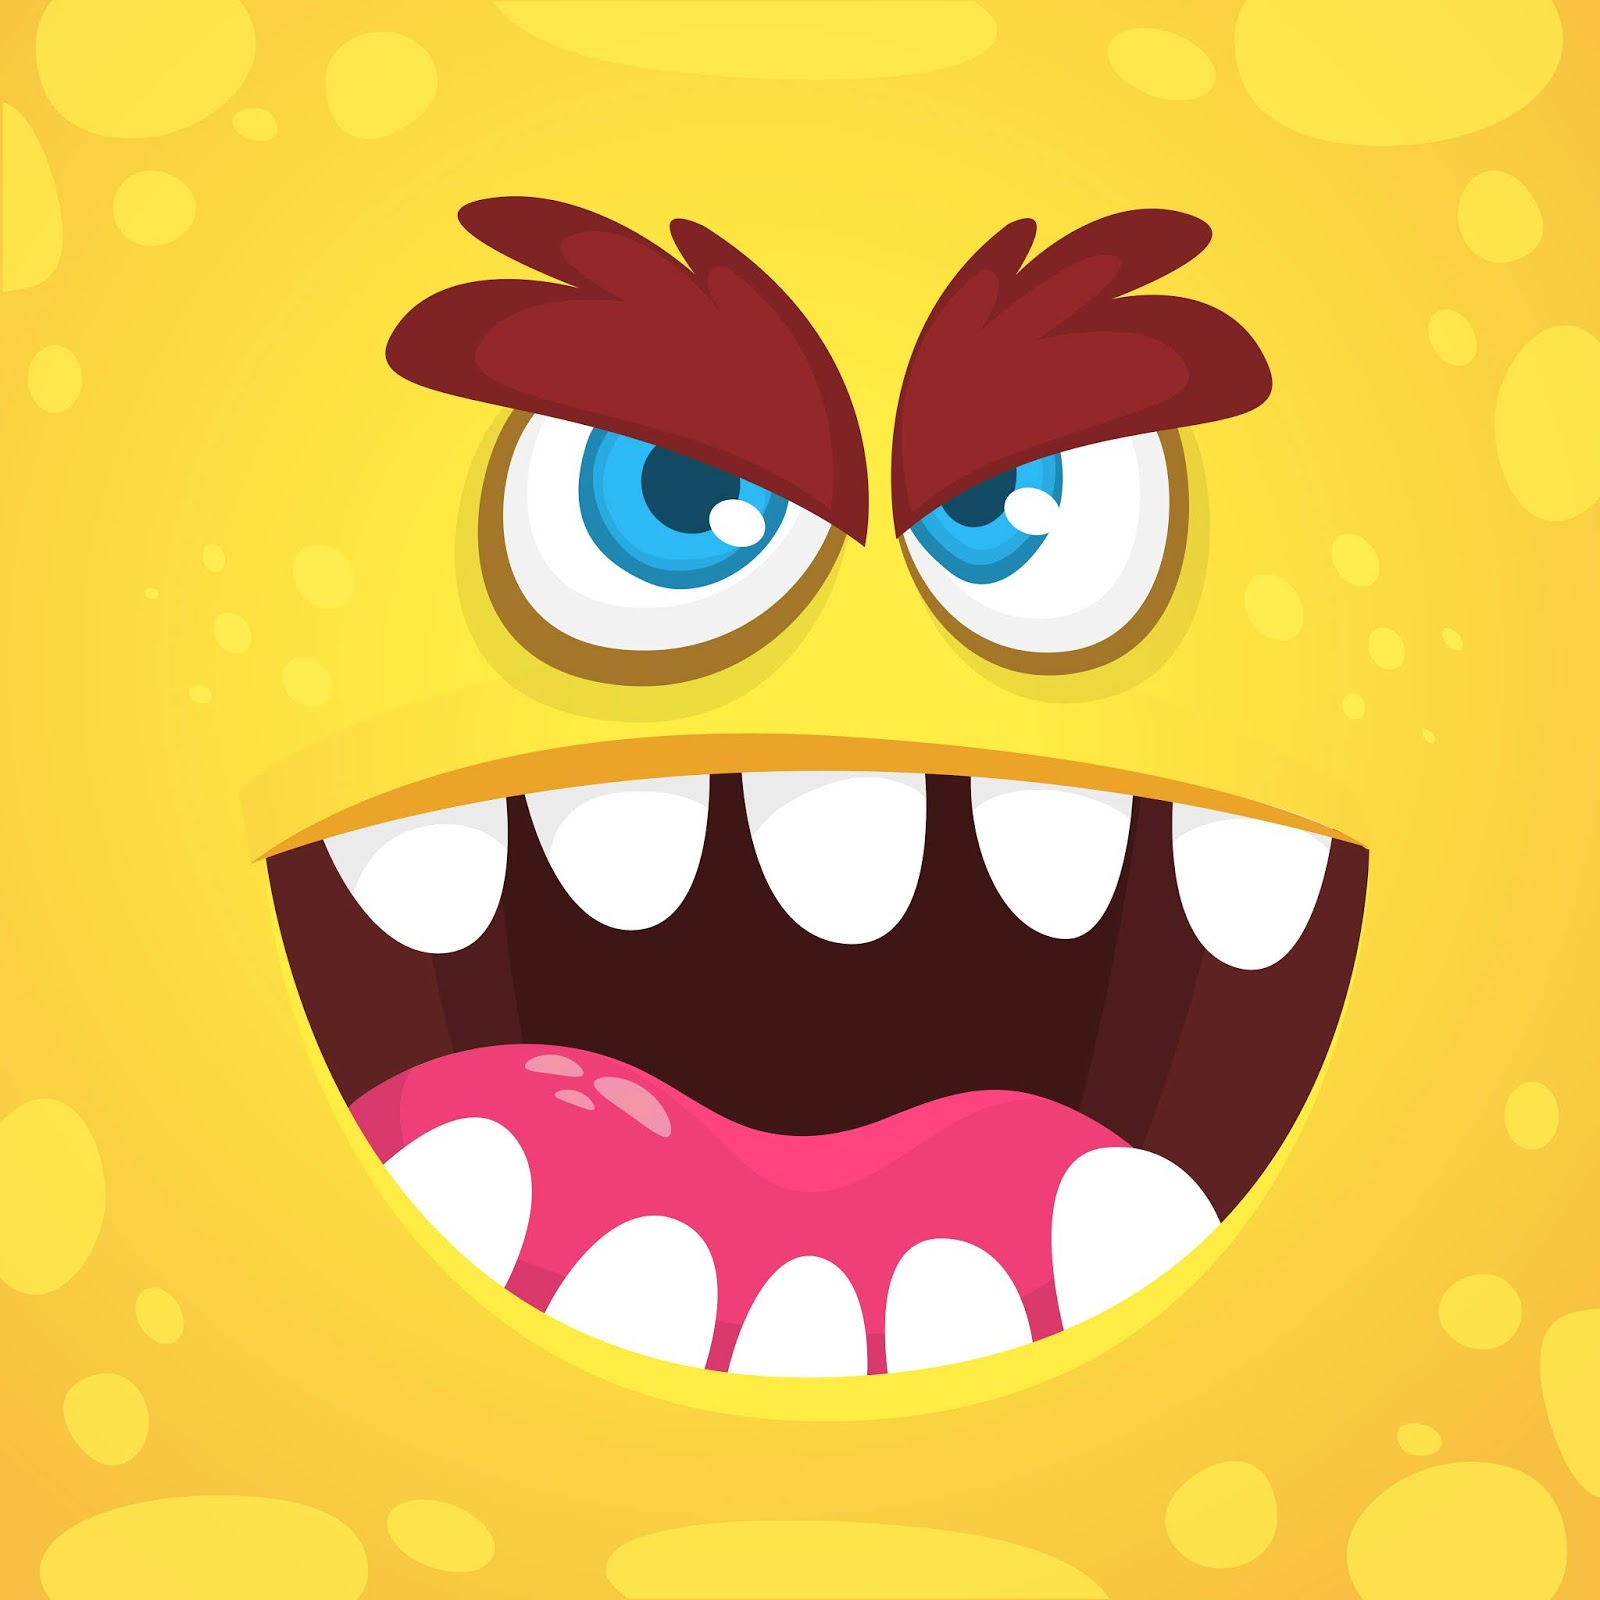 Monster Face Style Free Download Vector CDR, AI, EPS and PNG Formats